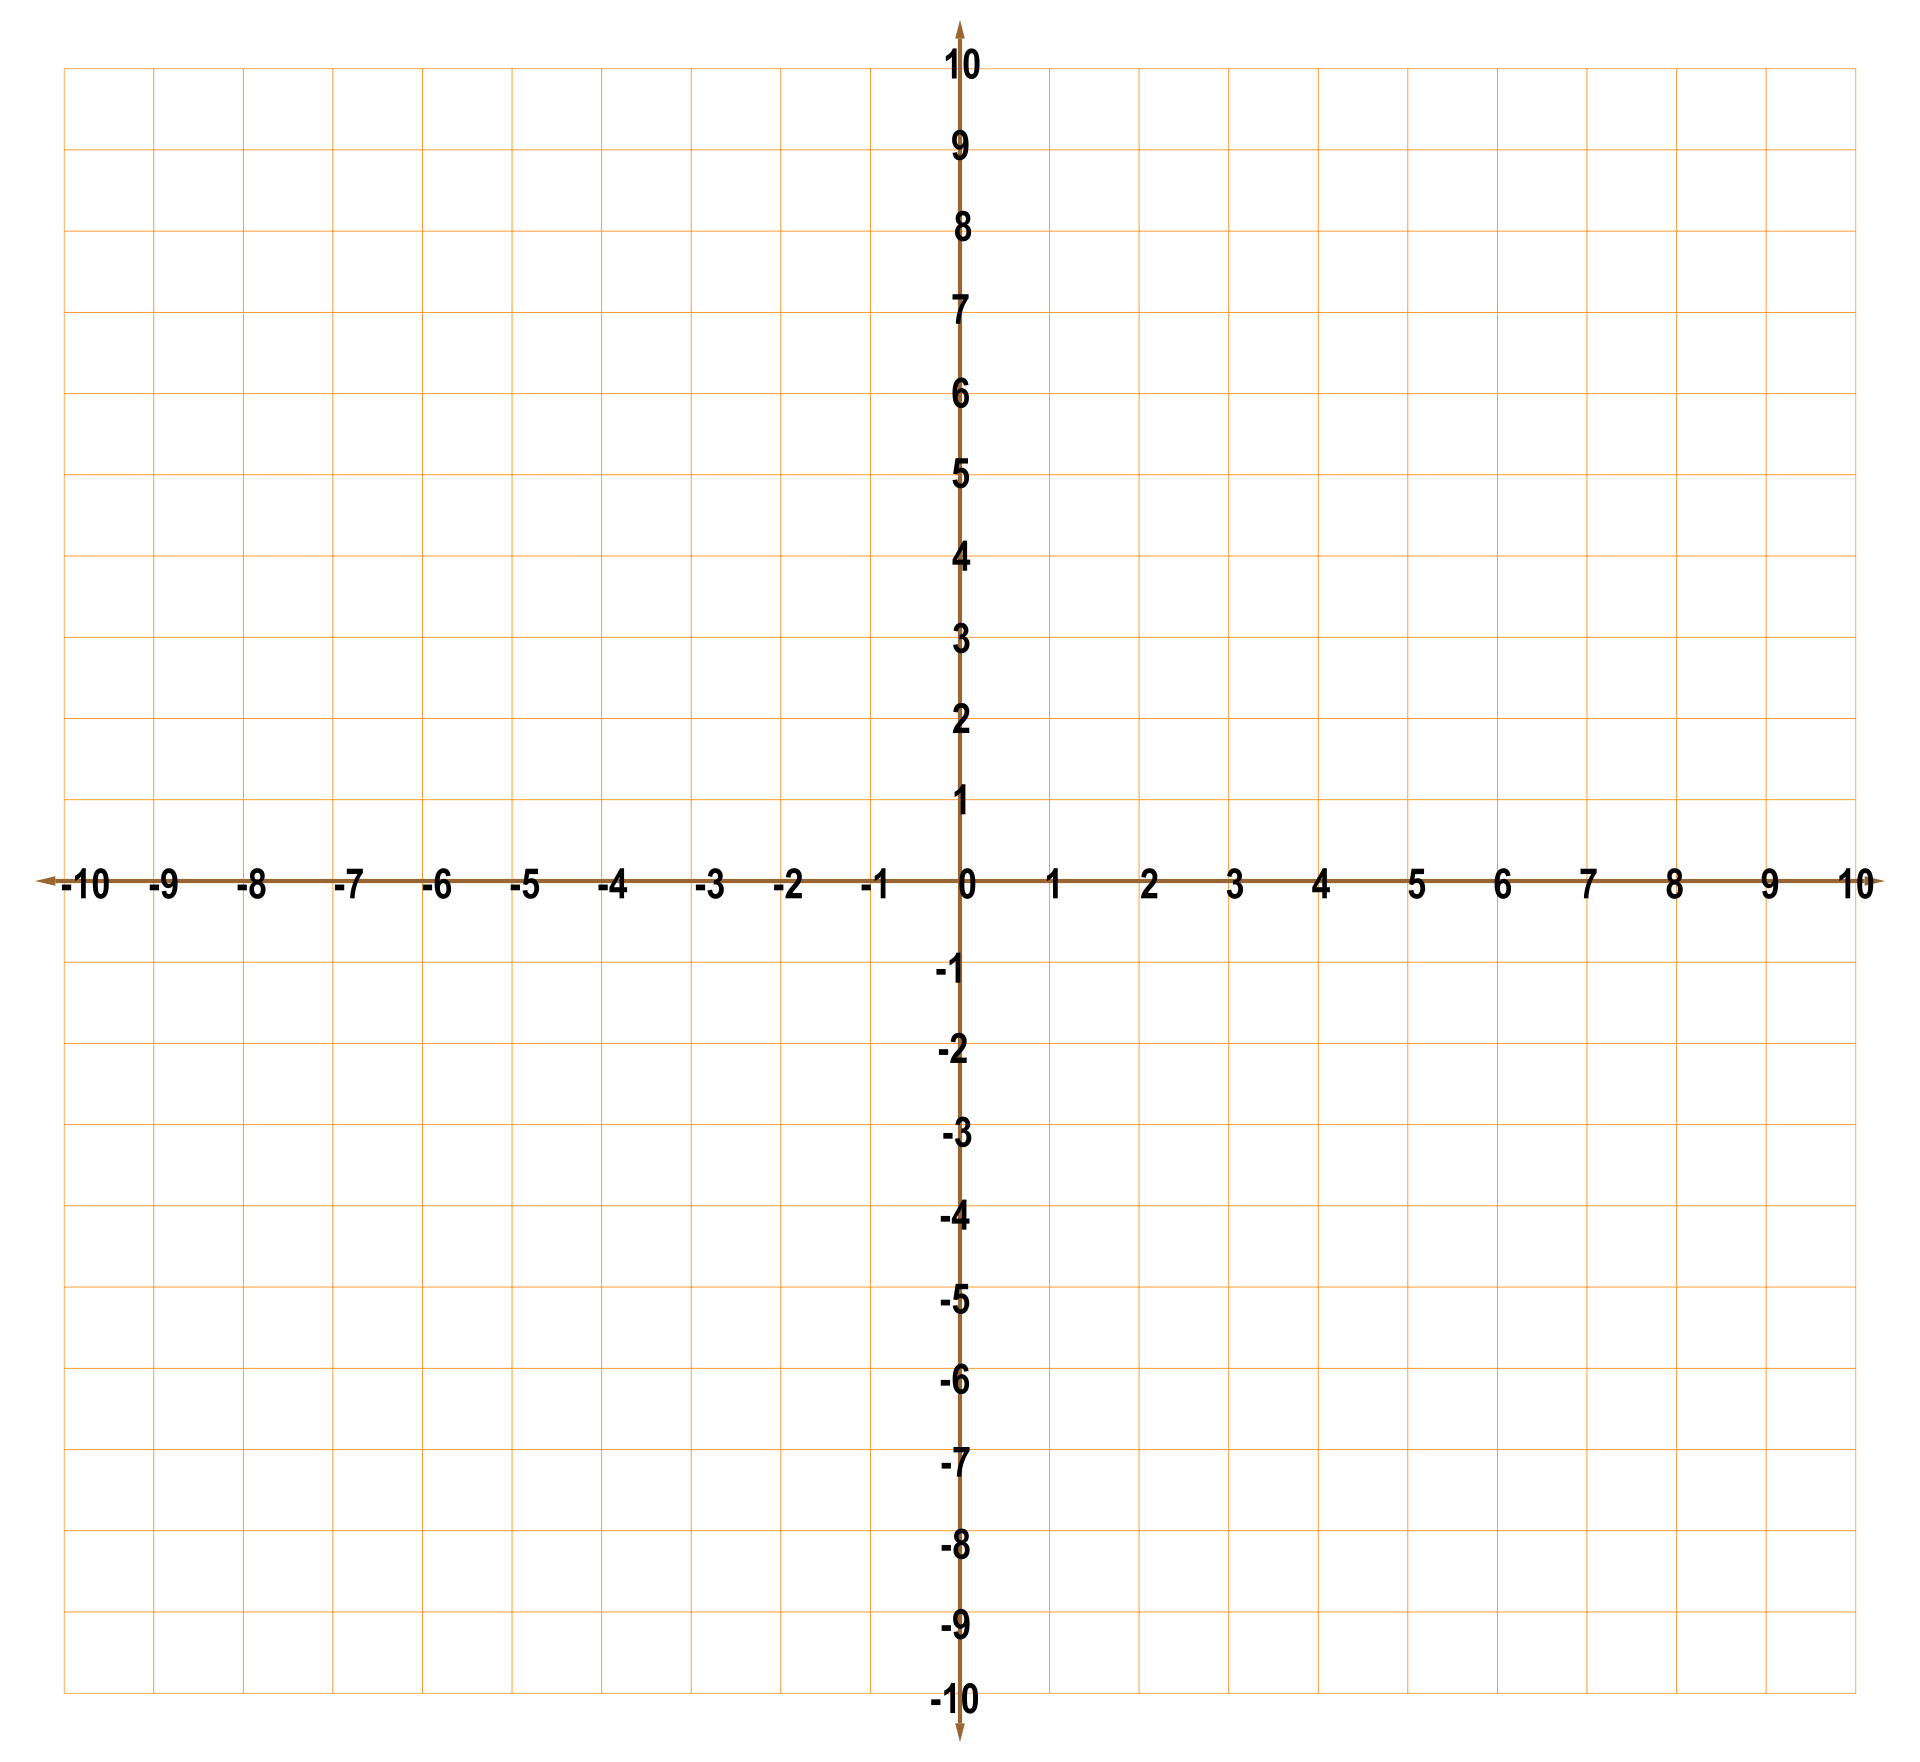 20 By 20 Grid With Numbers